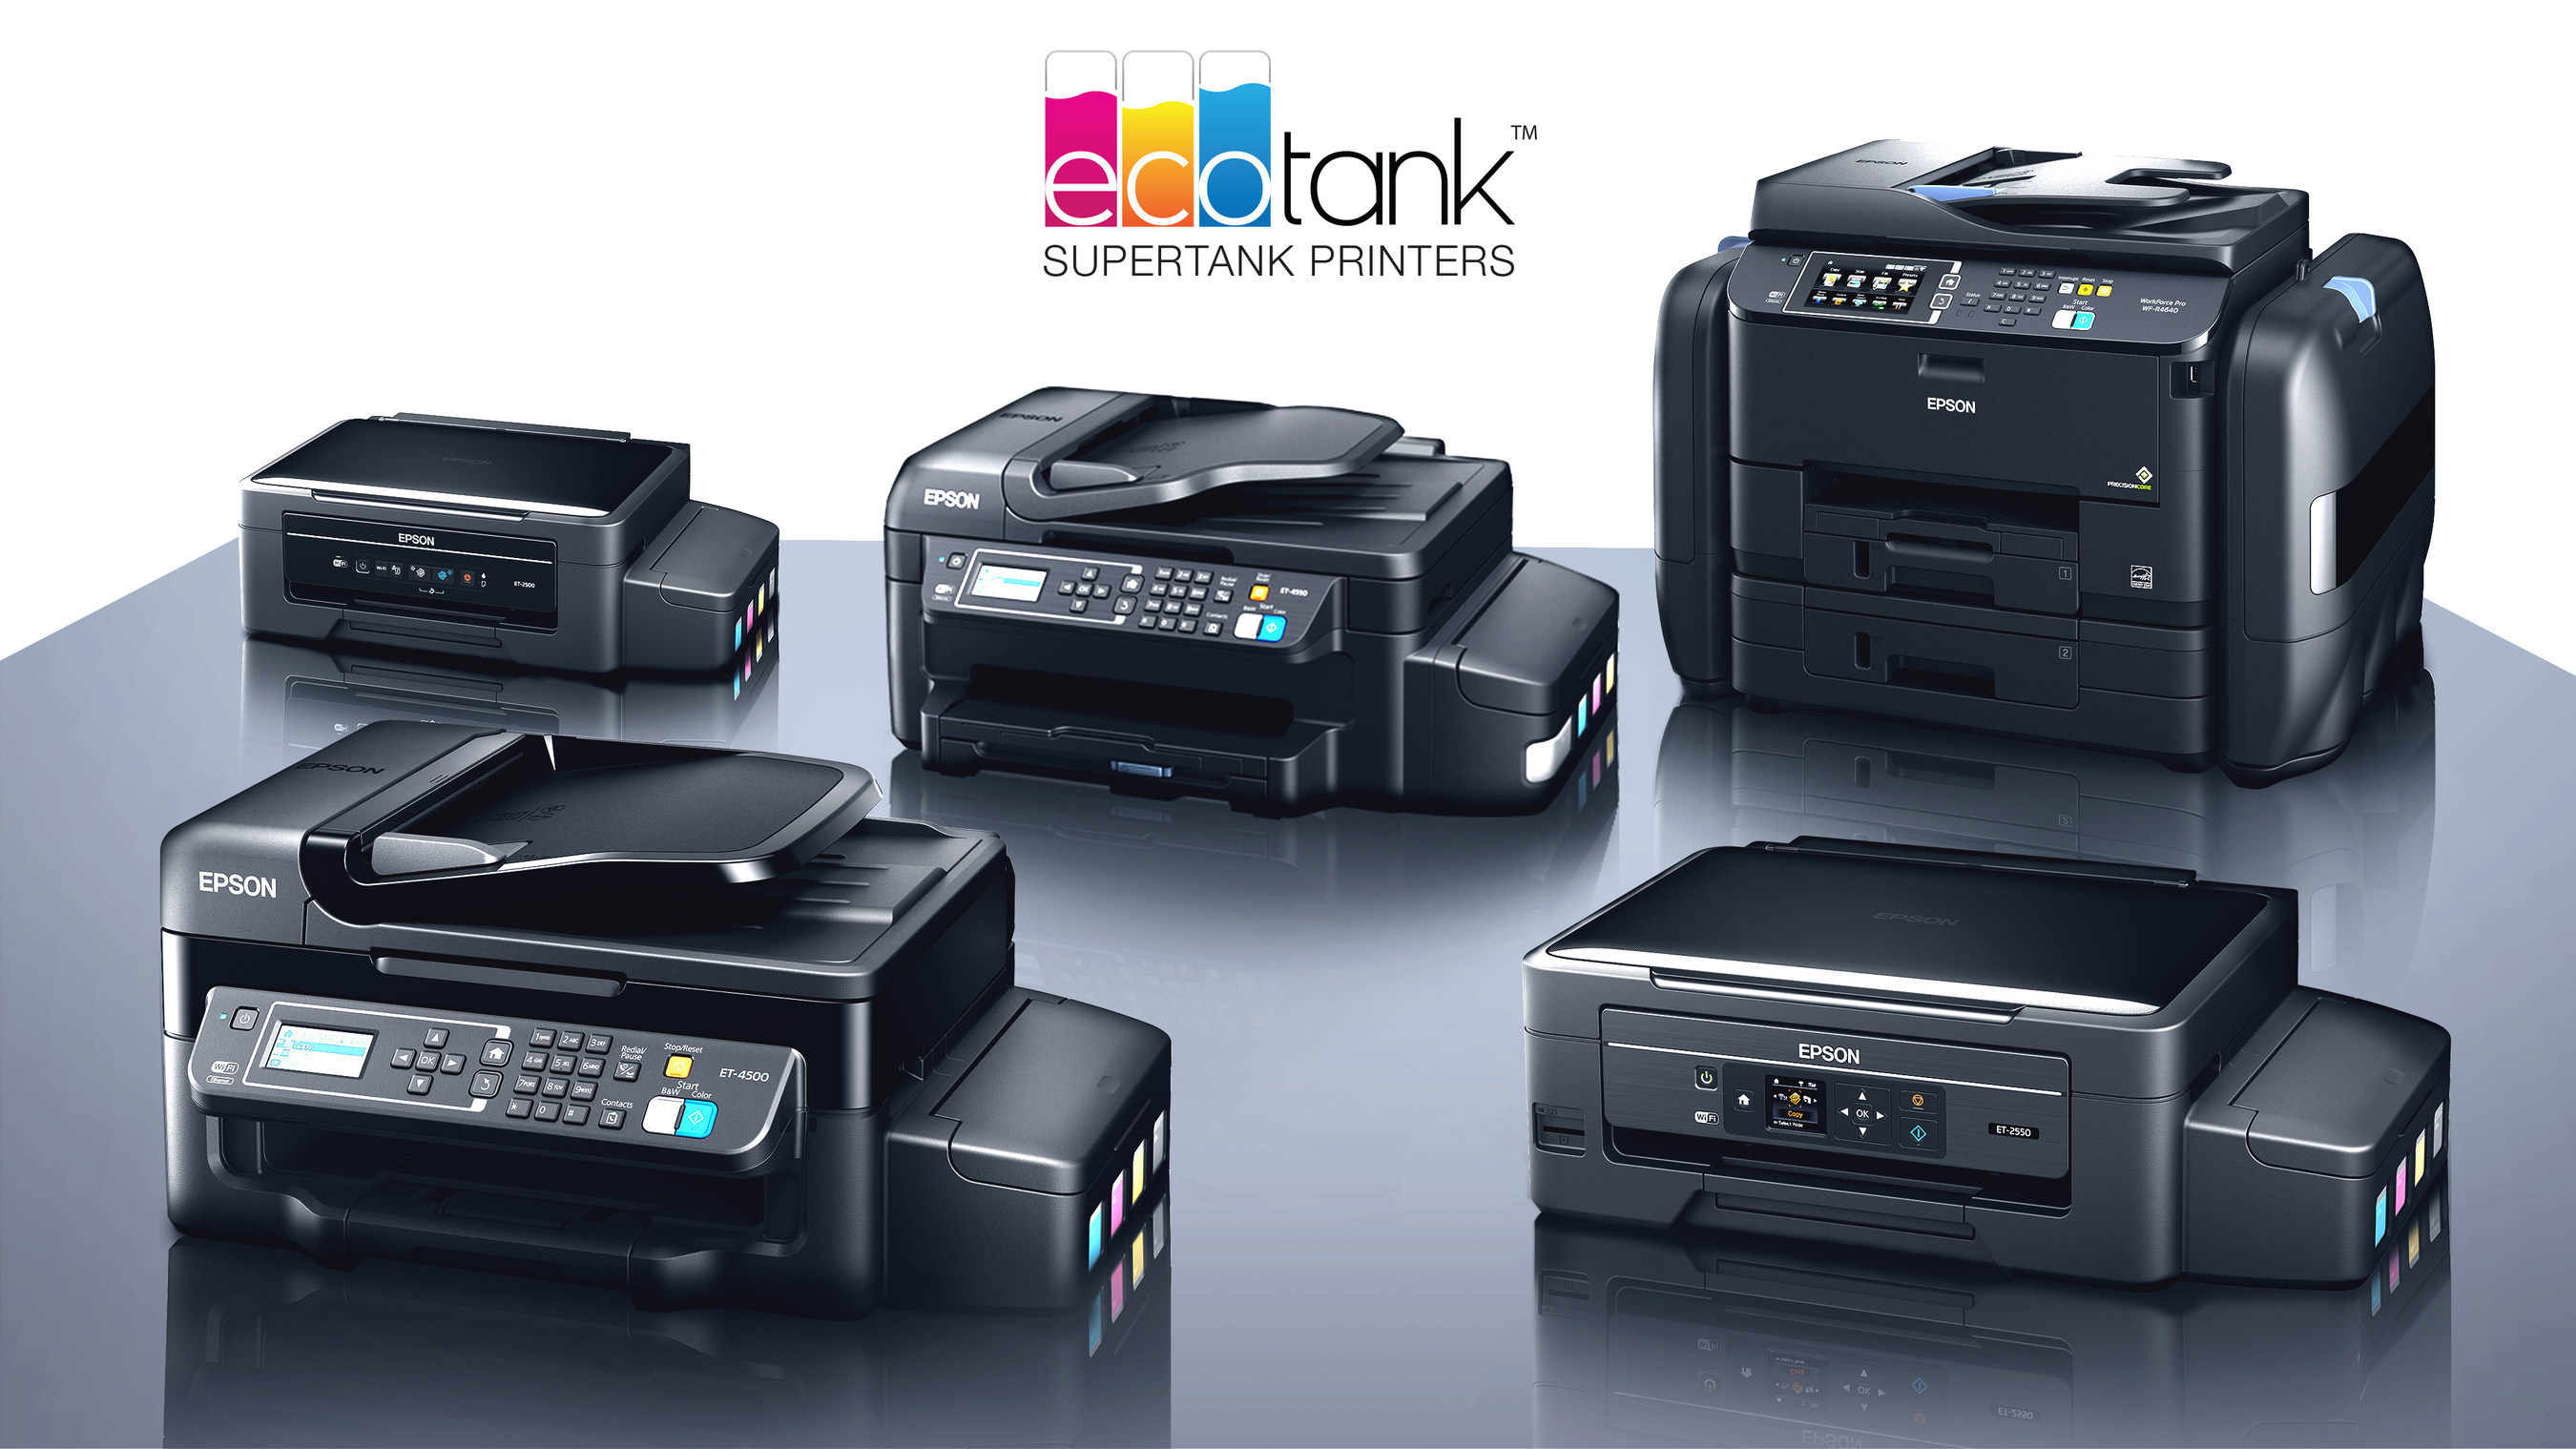 Epson Transforms Printer Category with EcoTank - Loaded and Ready to Print for Up to Two Years Without an Ink Refill